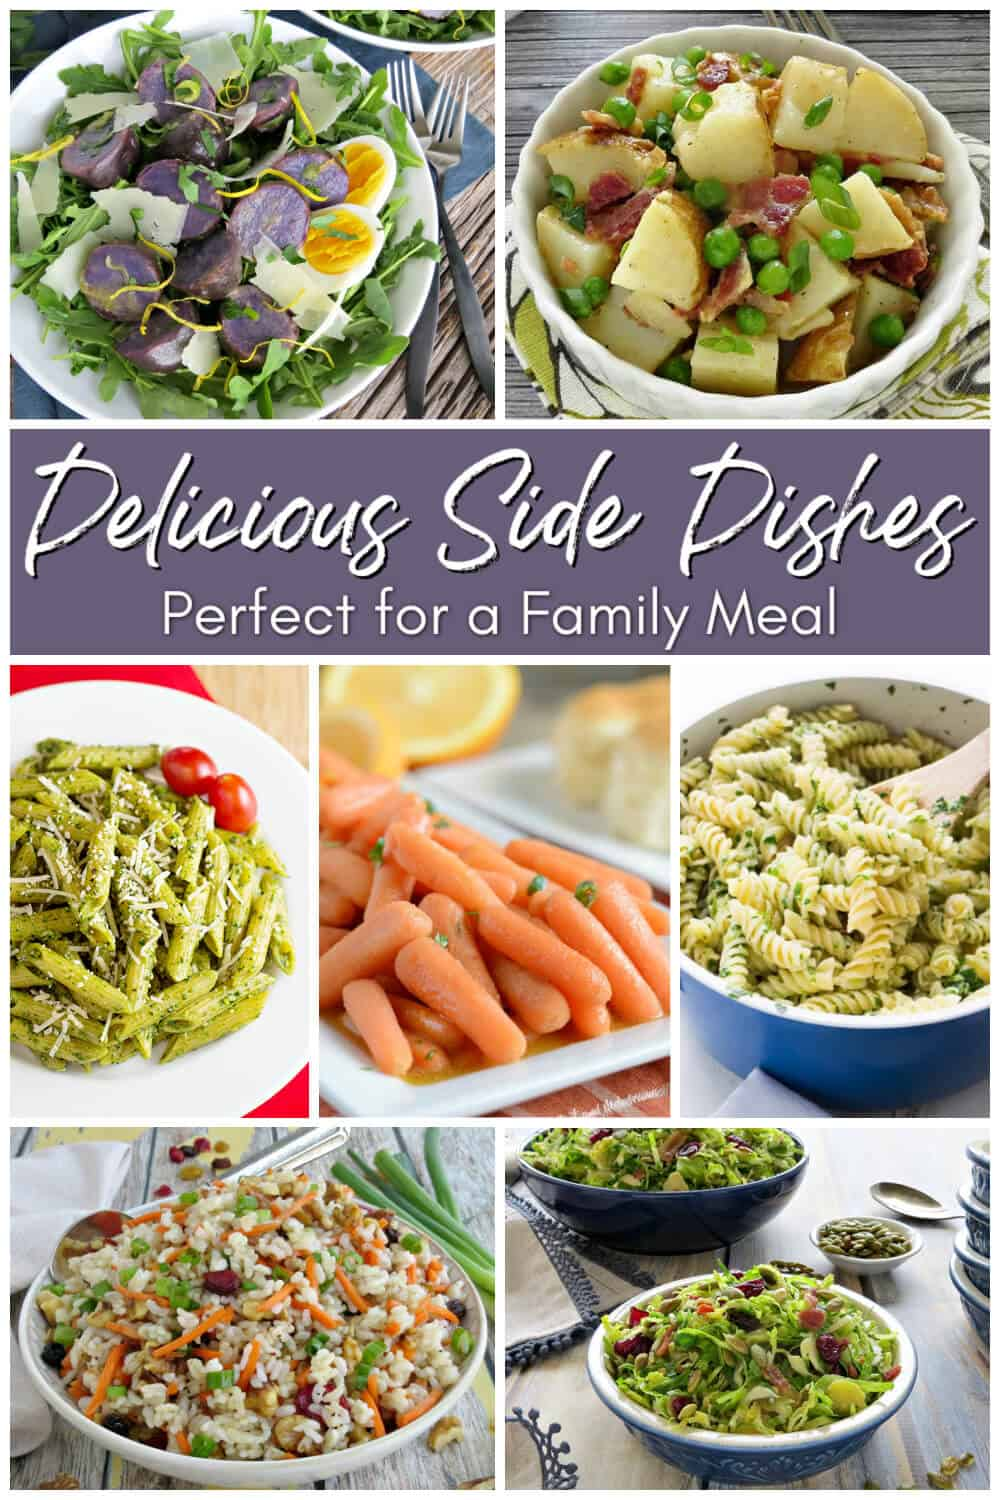 Collage of side dishes - Text overly says Delicious Side Dishes - Perfect for a Family Meal